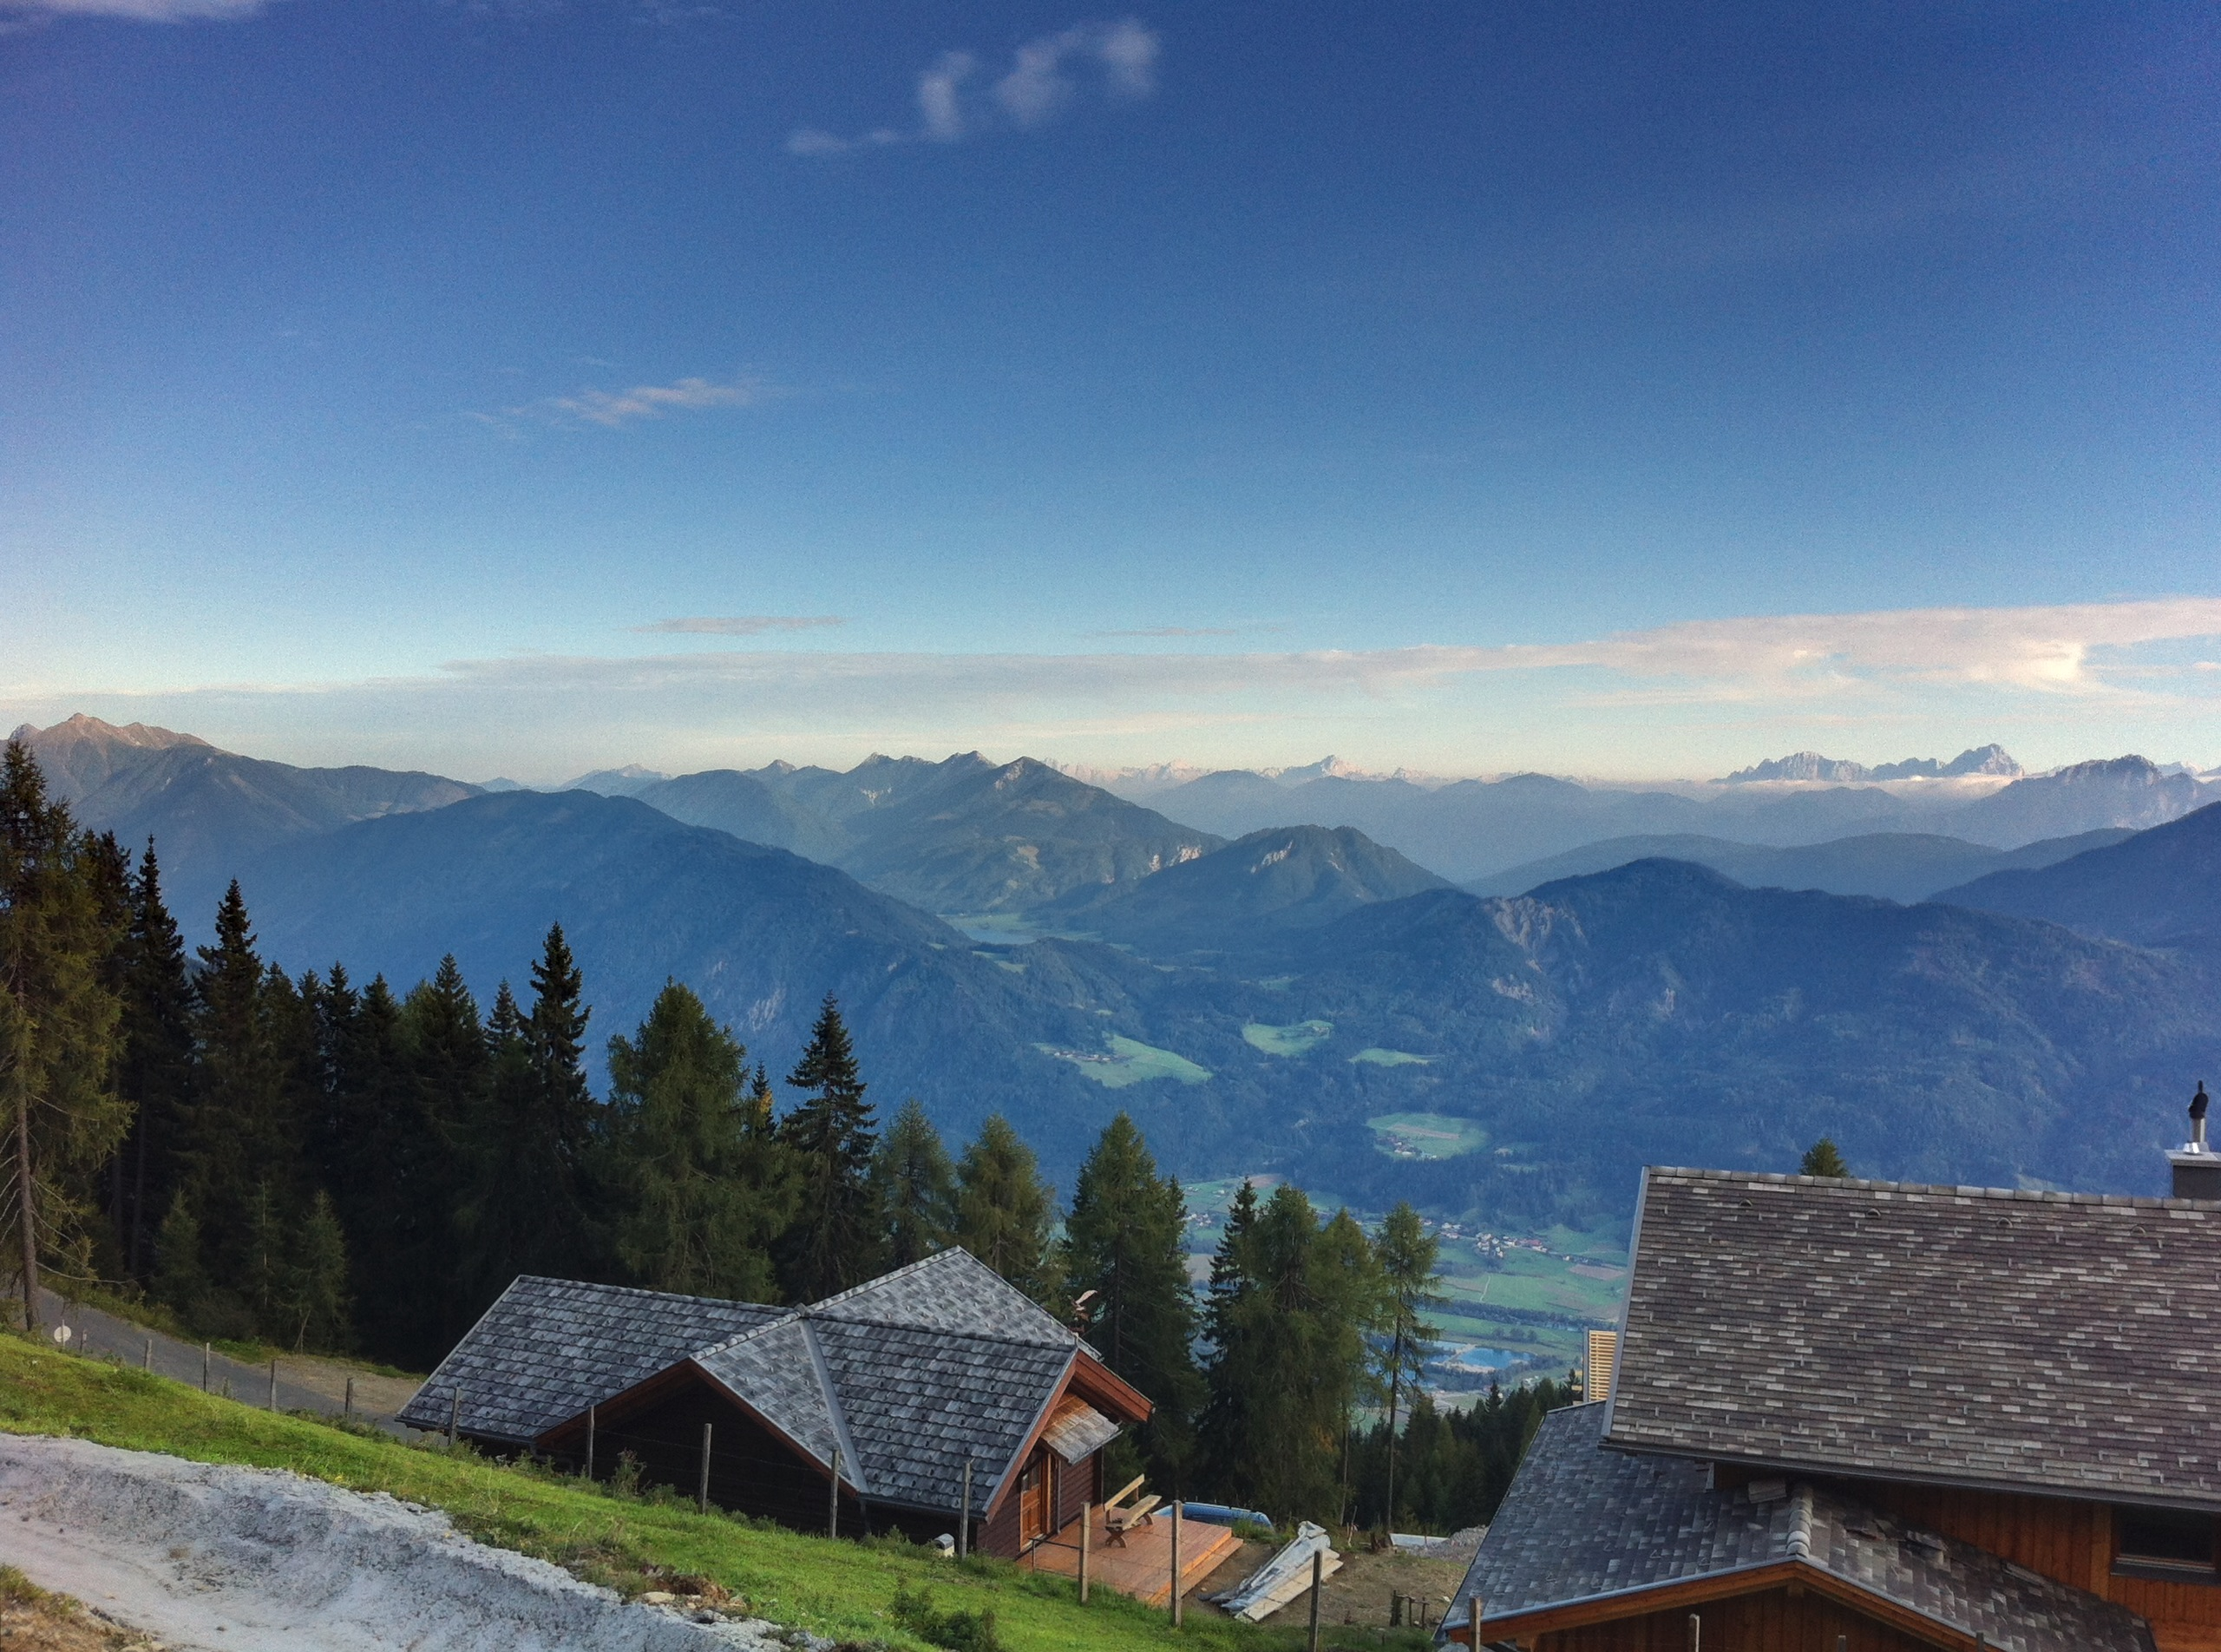 Ankunft Emberger Alm